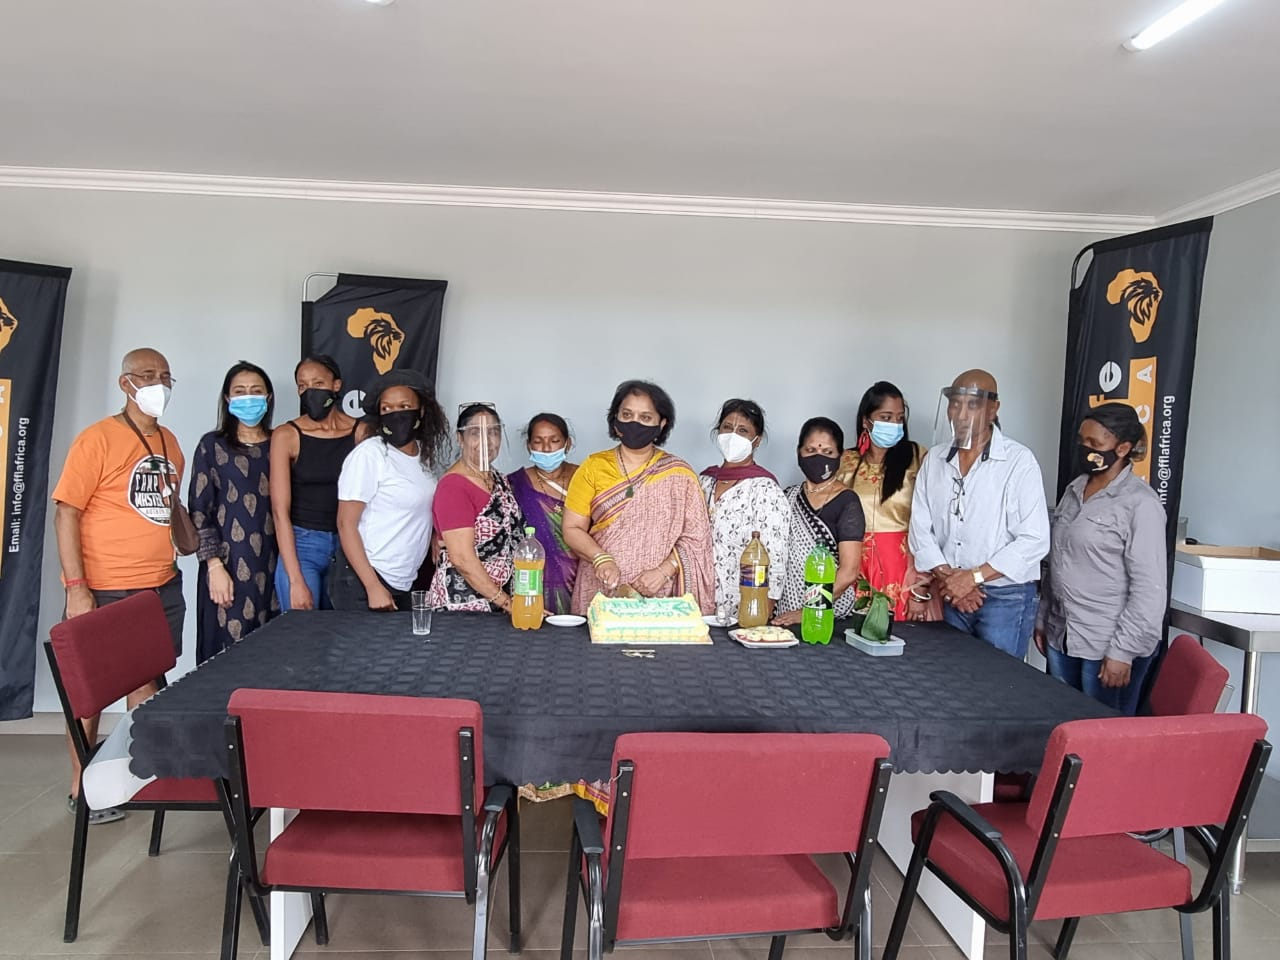 MF Leader Celebrates First Anniversary: Food For Life Africa